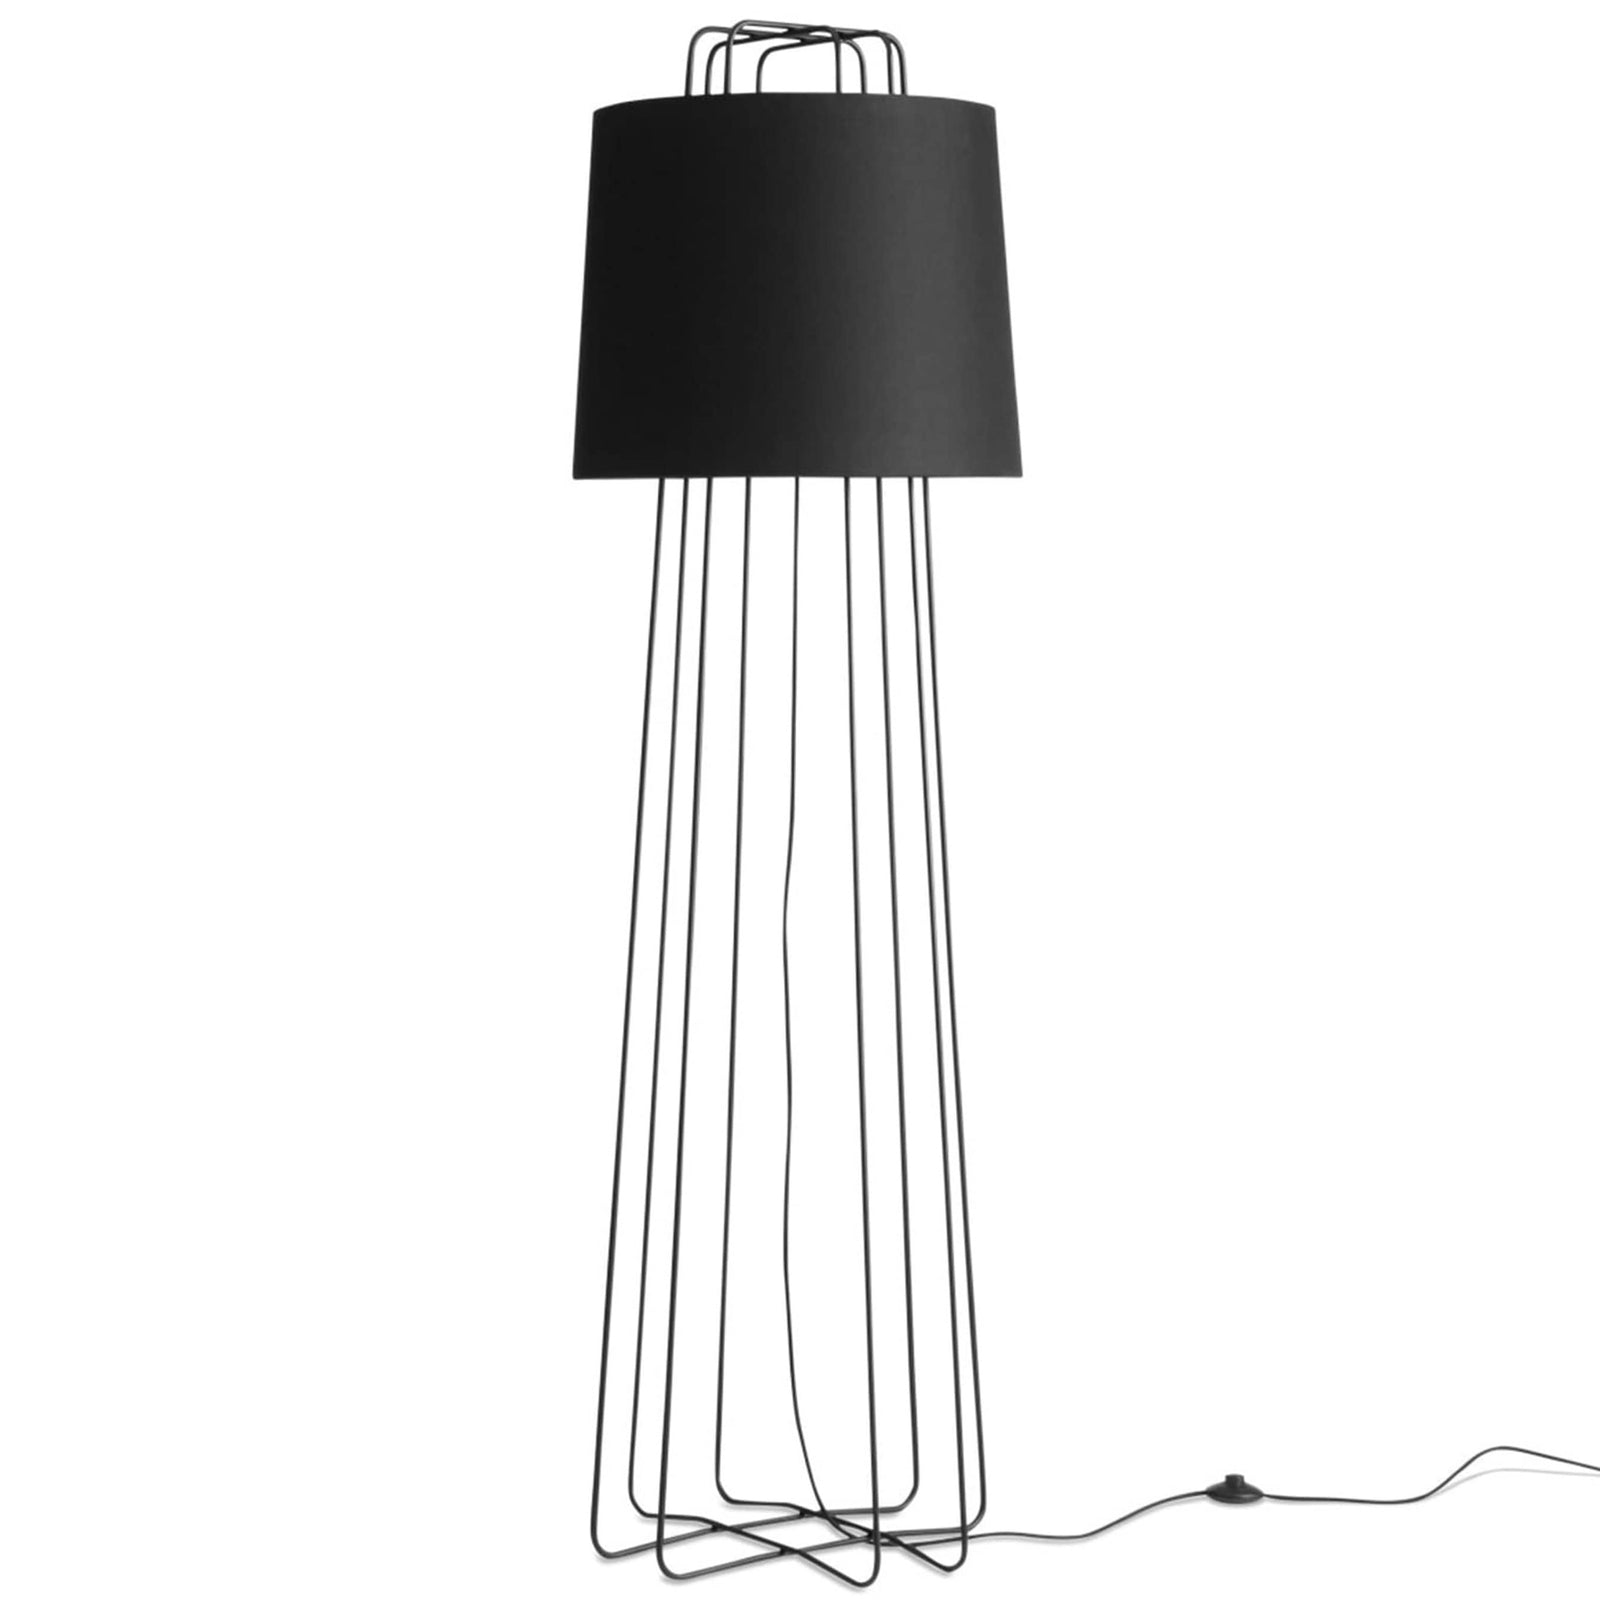 Blu Dot Lighting Black Perimeter Floor Lamp